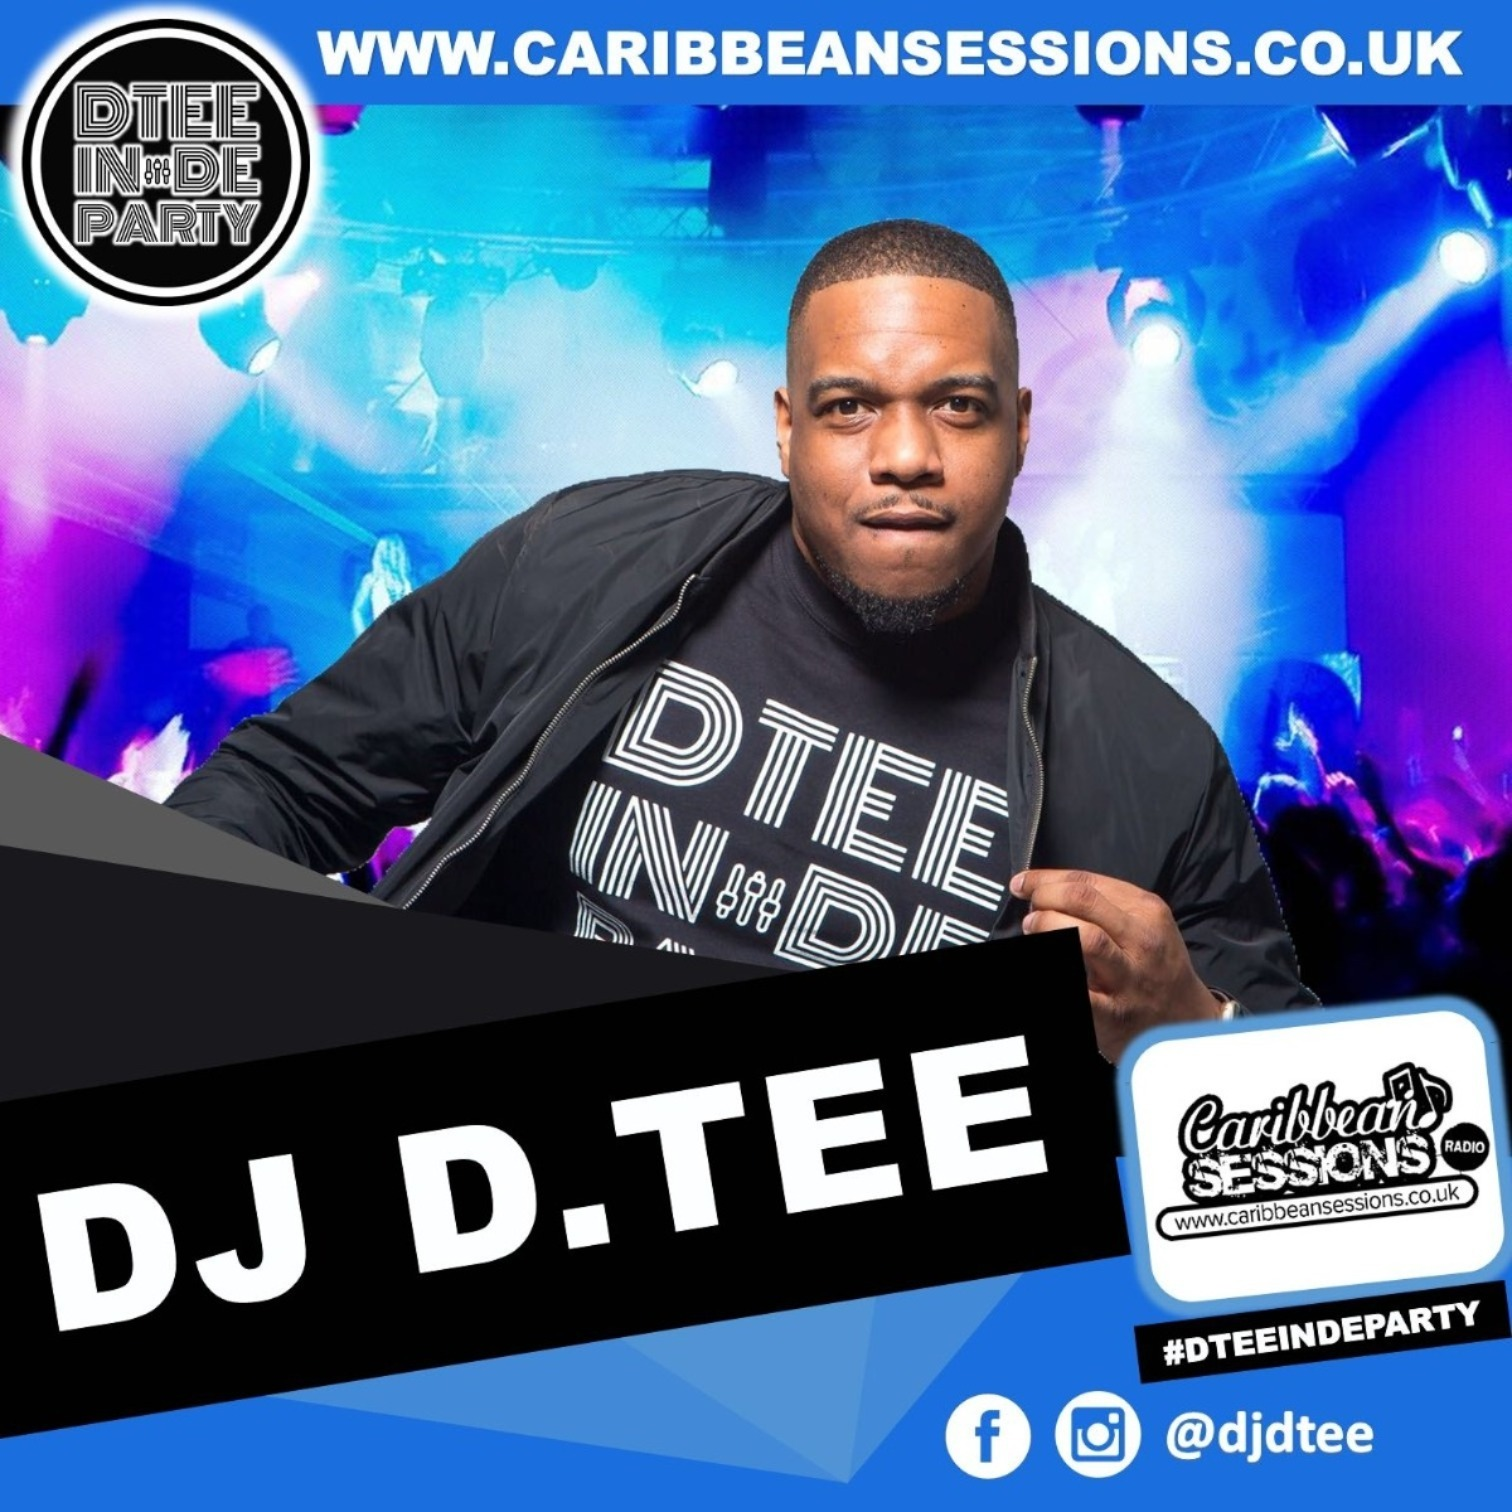 dteeindepartycaribbeansessions